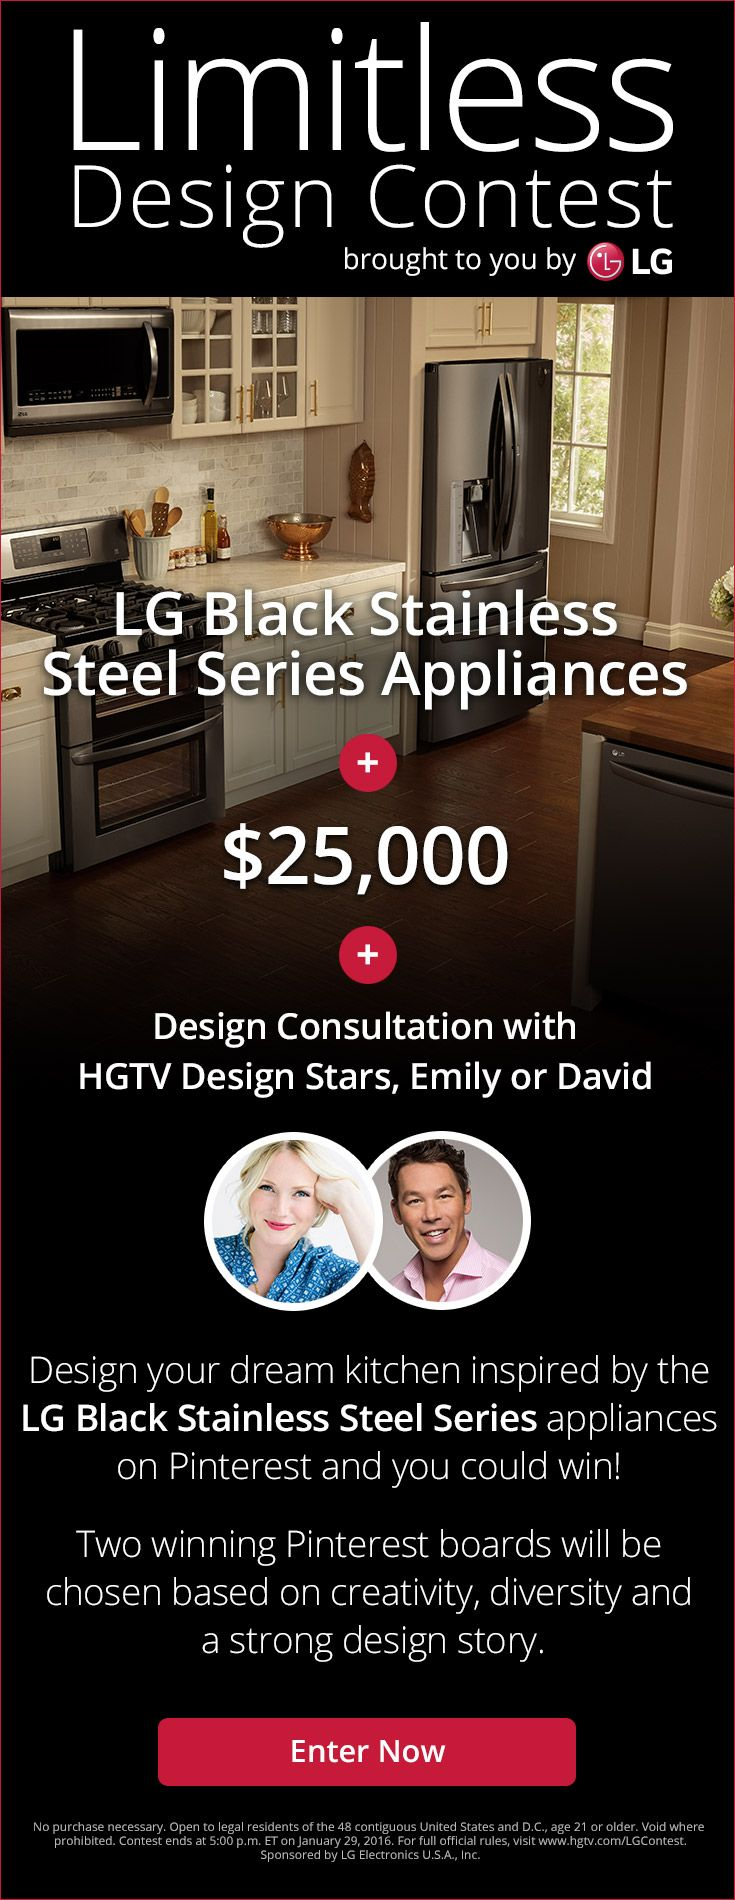 This Rustic Kitchen Pairs Tried And True Textures With Timeless Style  Thanks To The LG Black Stainless Steel Series.